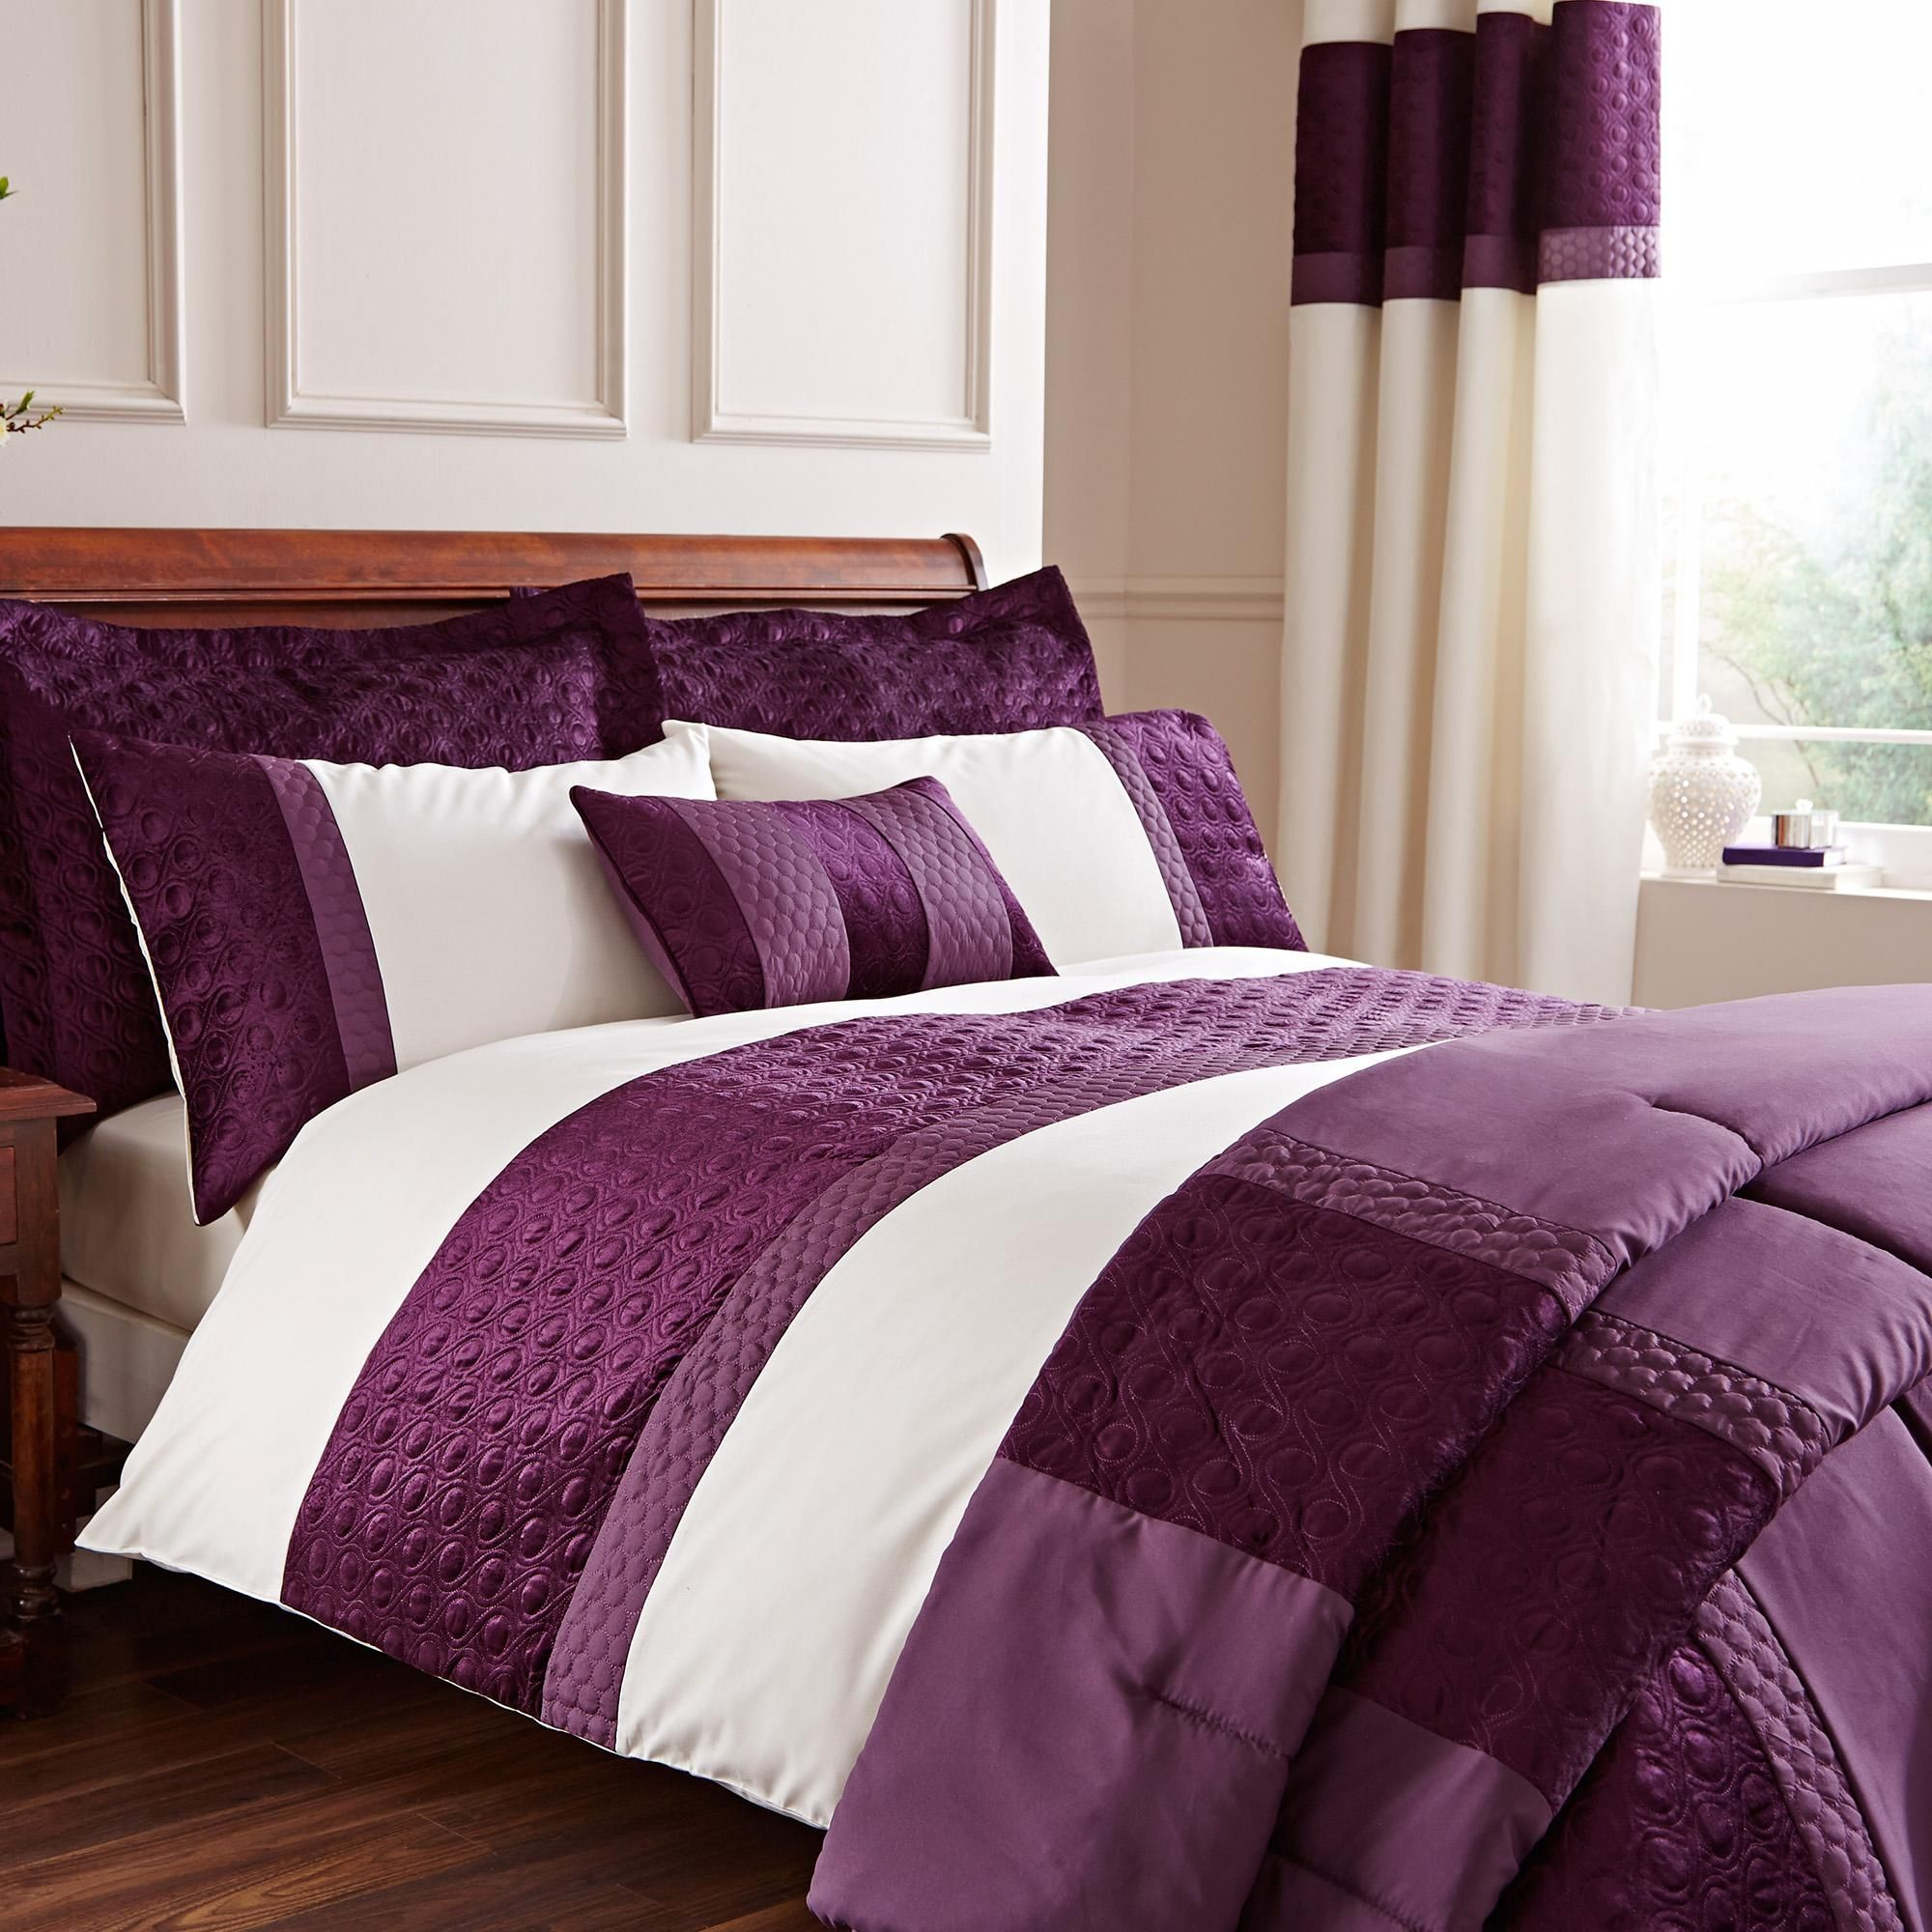 purple my galaxy sheets king magical full of gray bow cover sets bedroom size lavender and bedspread covers bag comforter white light fabulous farah uk quilt princess urban bedding duvet in medallion colonel set from yellow linen plum double mustard xmas thinking outfitters